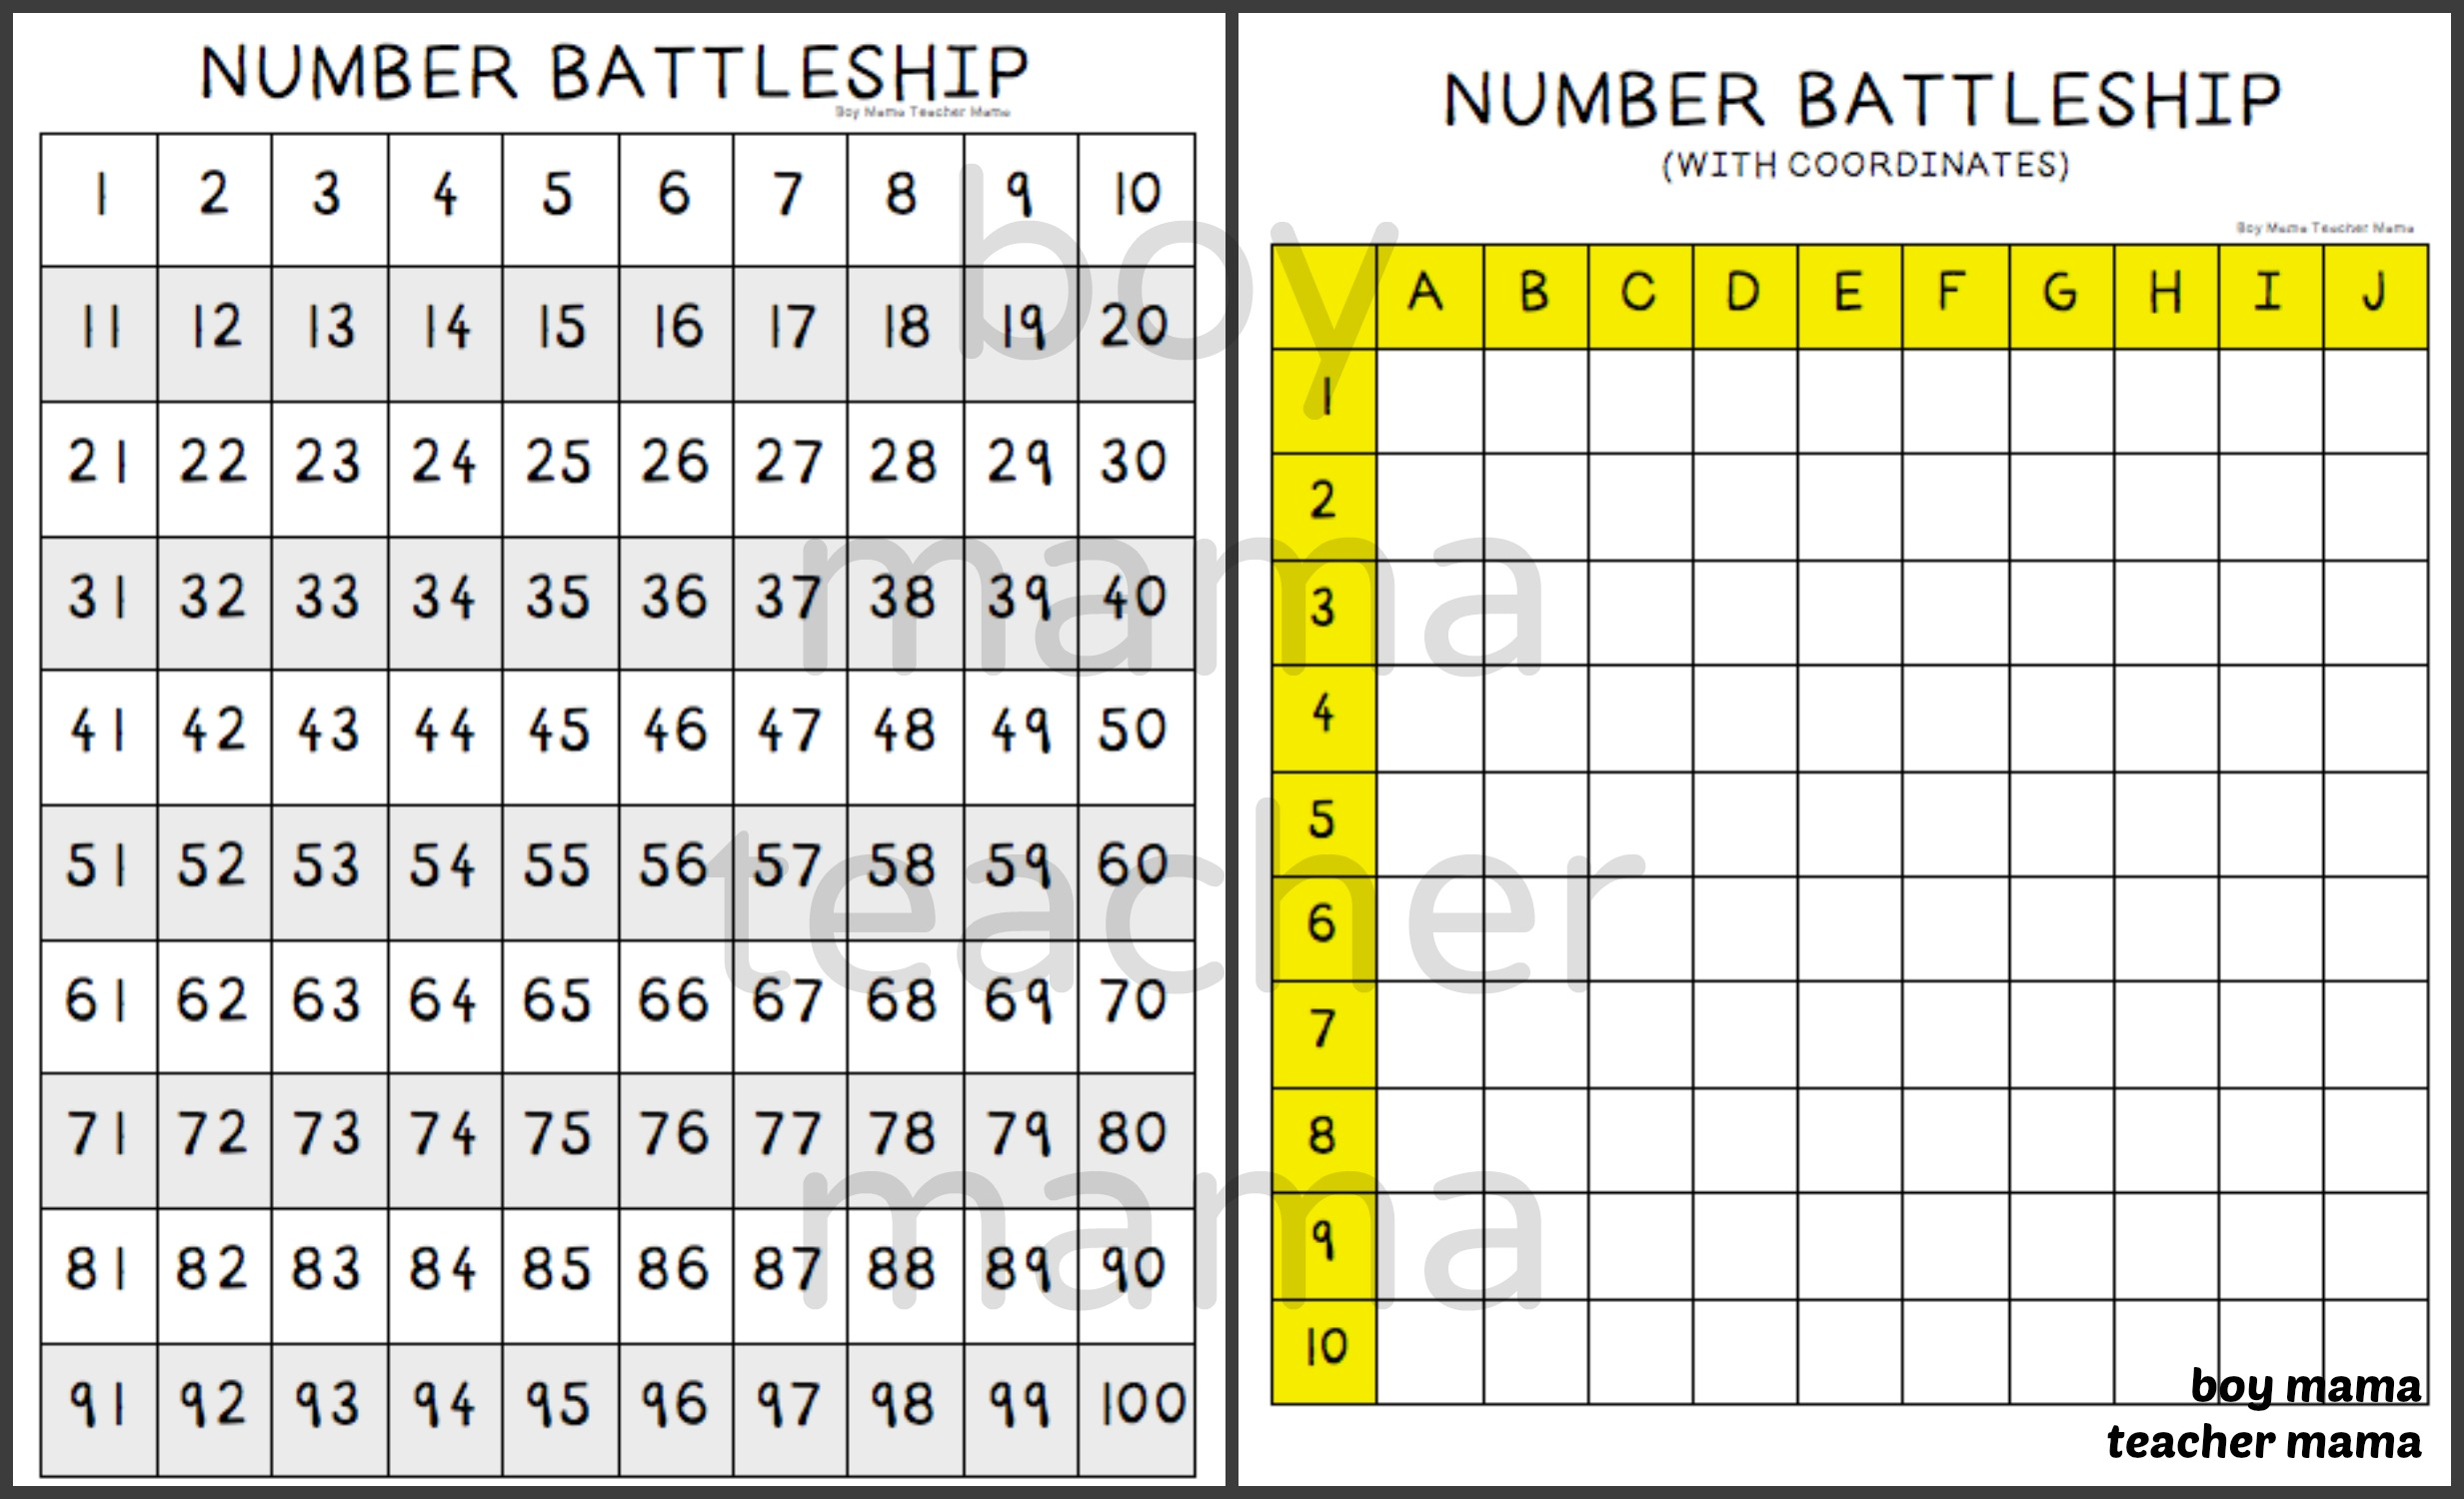 Boy Mama Teacher Mama Numbers Battleship Games